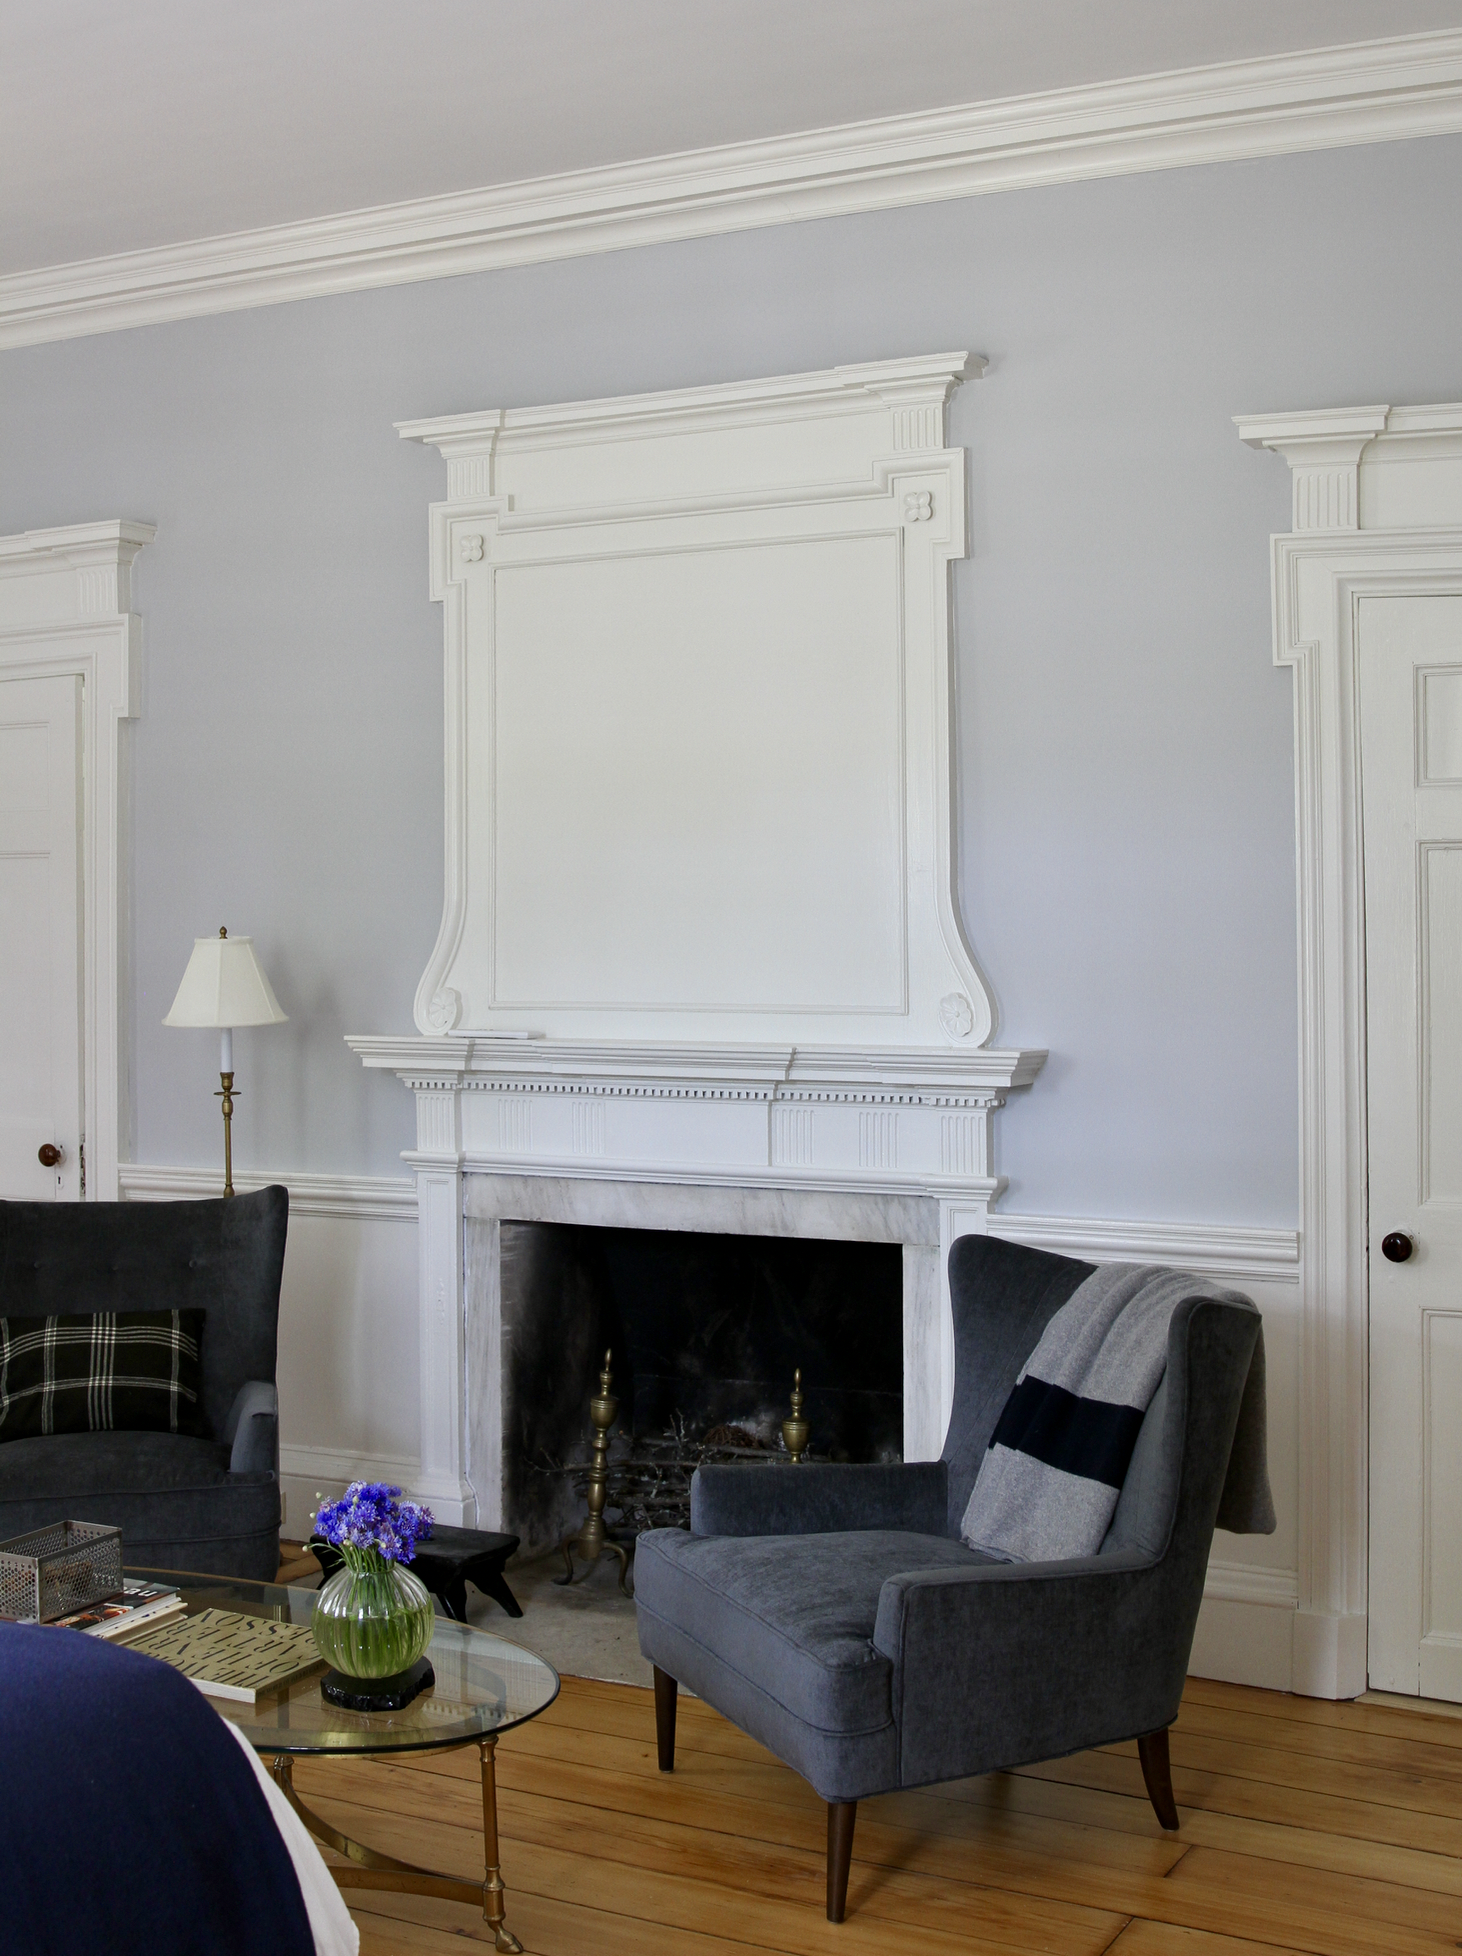 Room One   Of the nine fireplaces at Kenmore Hall, the most impressive may well be in room one, with an original overmantel panel featuring exquisitely detailed hand carved woodwork. Comfortable armchairs for reading.